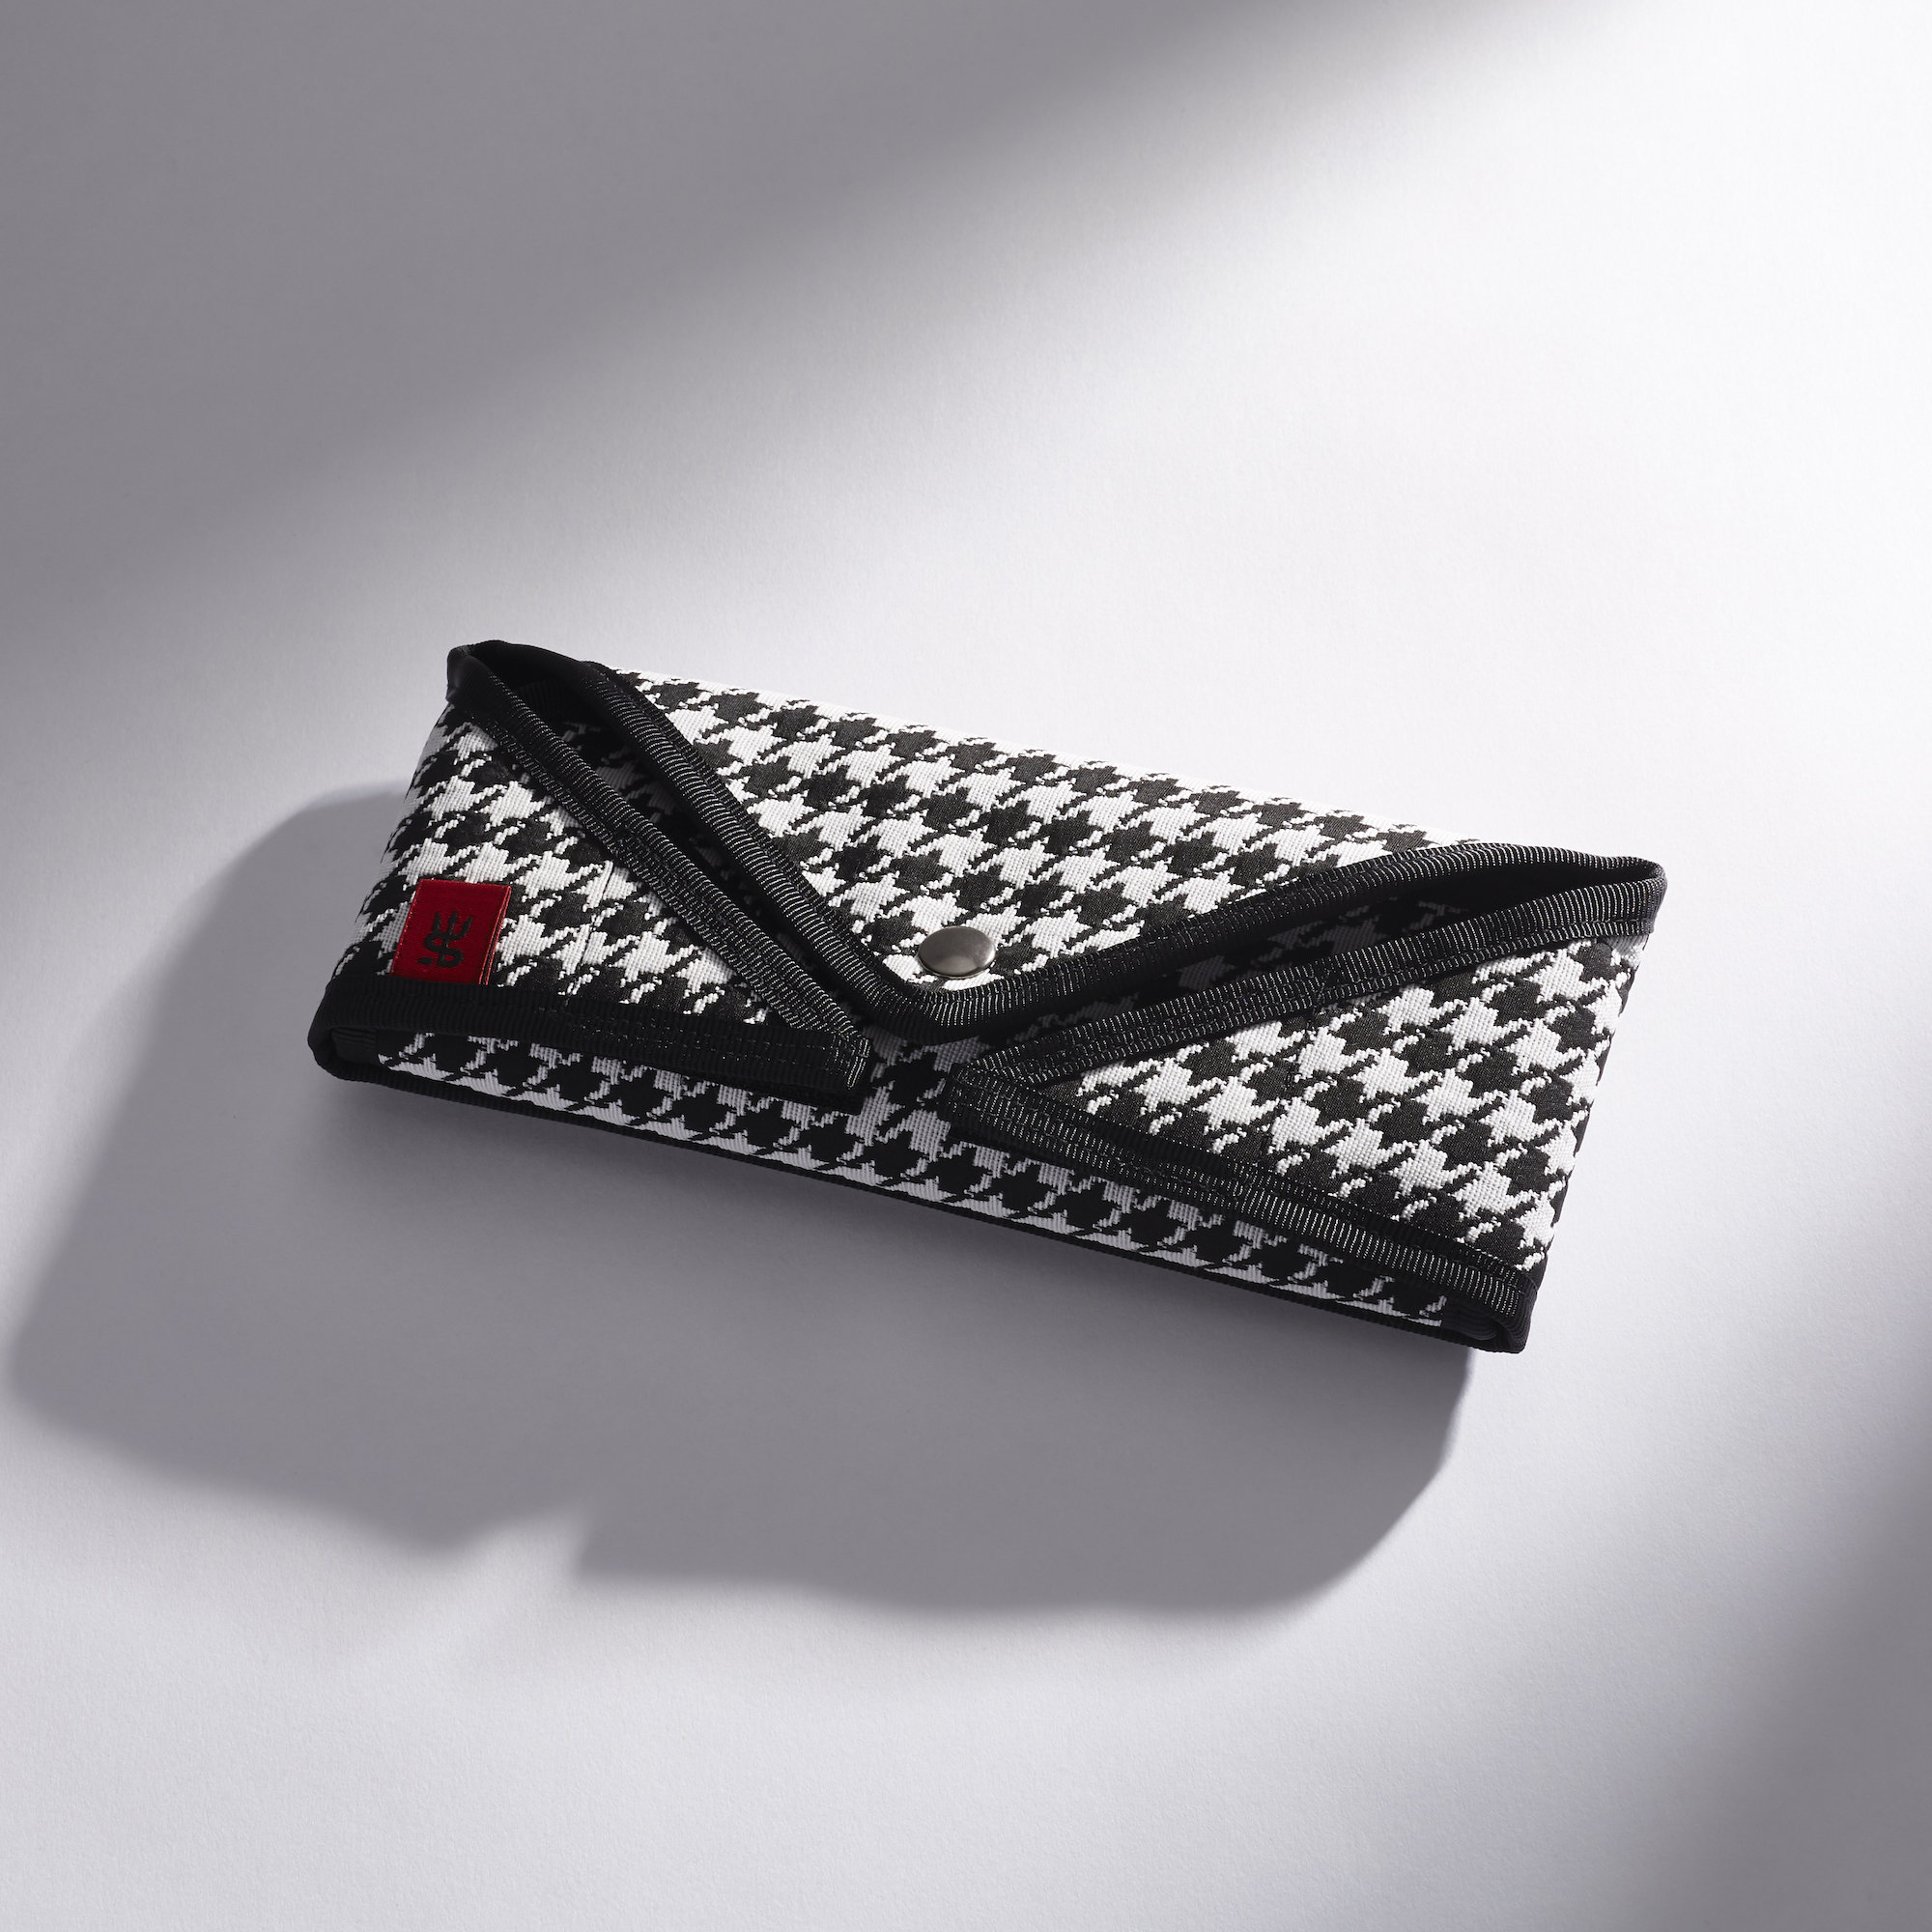 Alternate product image for The Houndstooth Brush Envelope shown with the description.